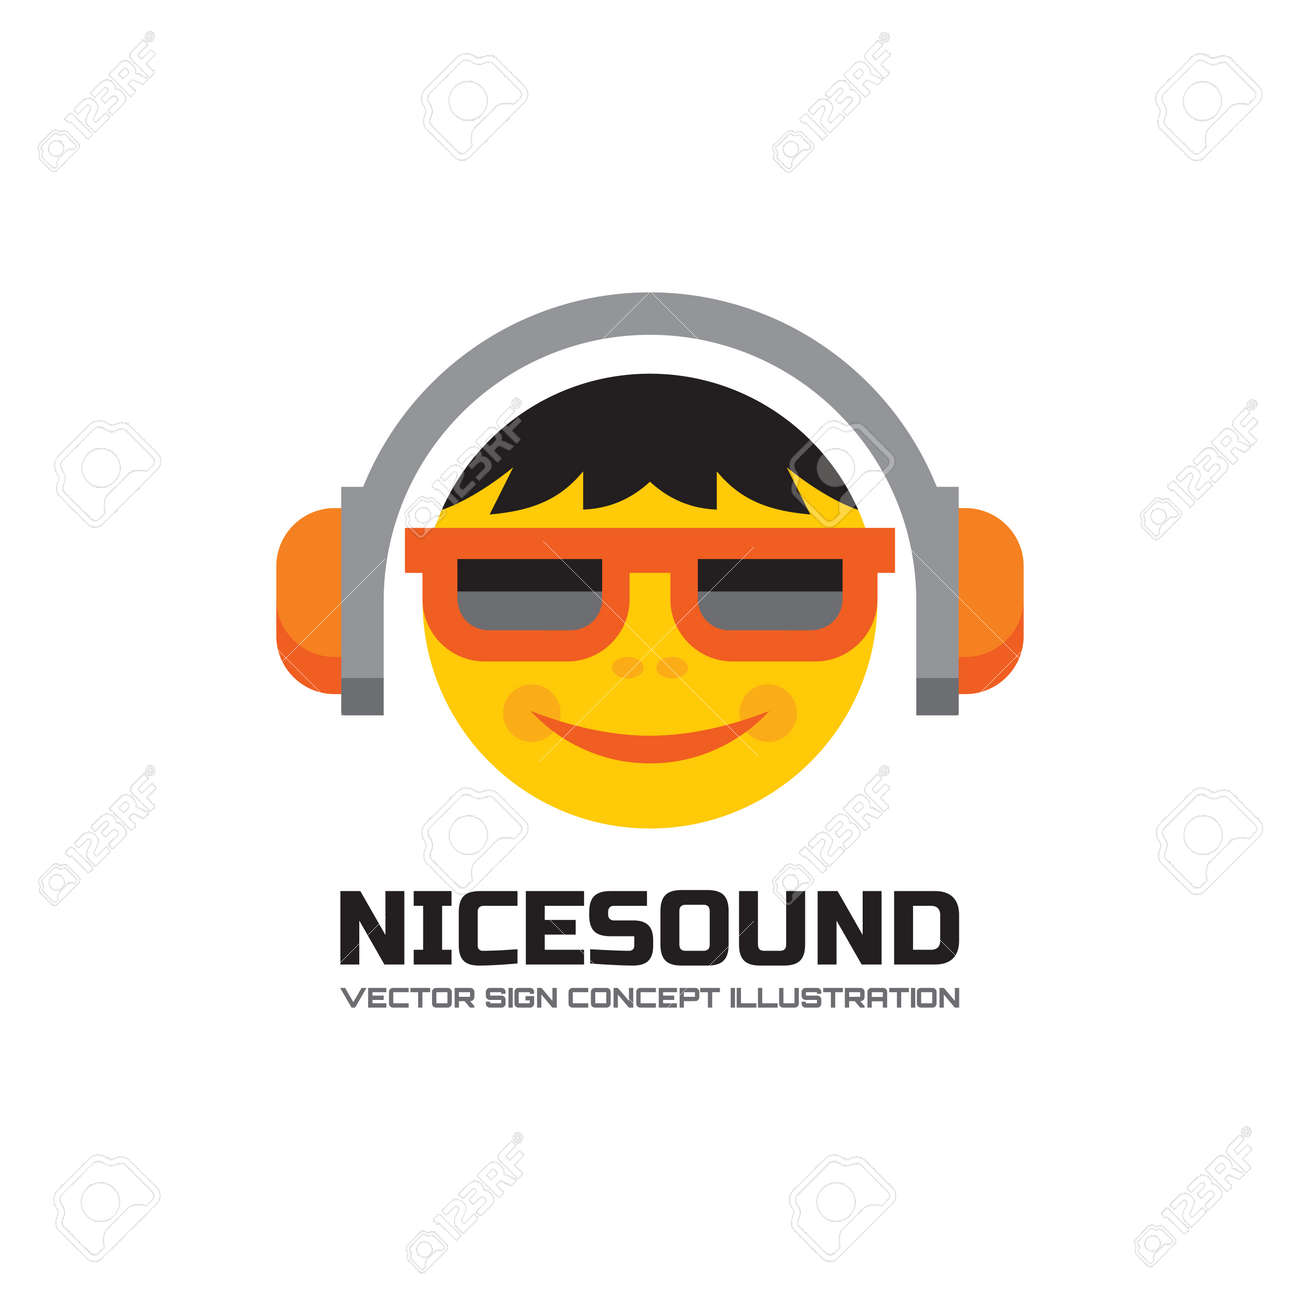 Nice sound - vector logo concept illustration in flat style design